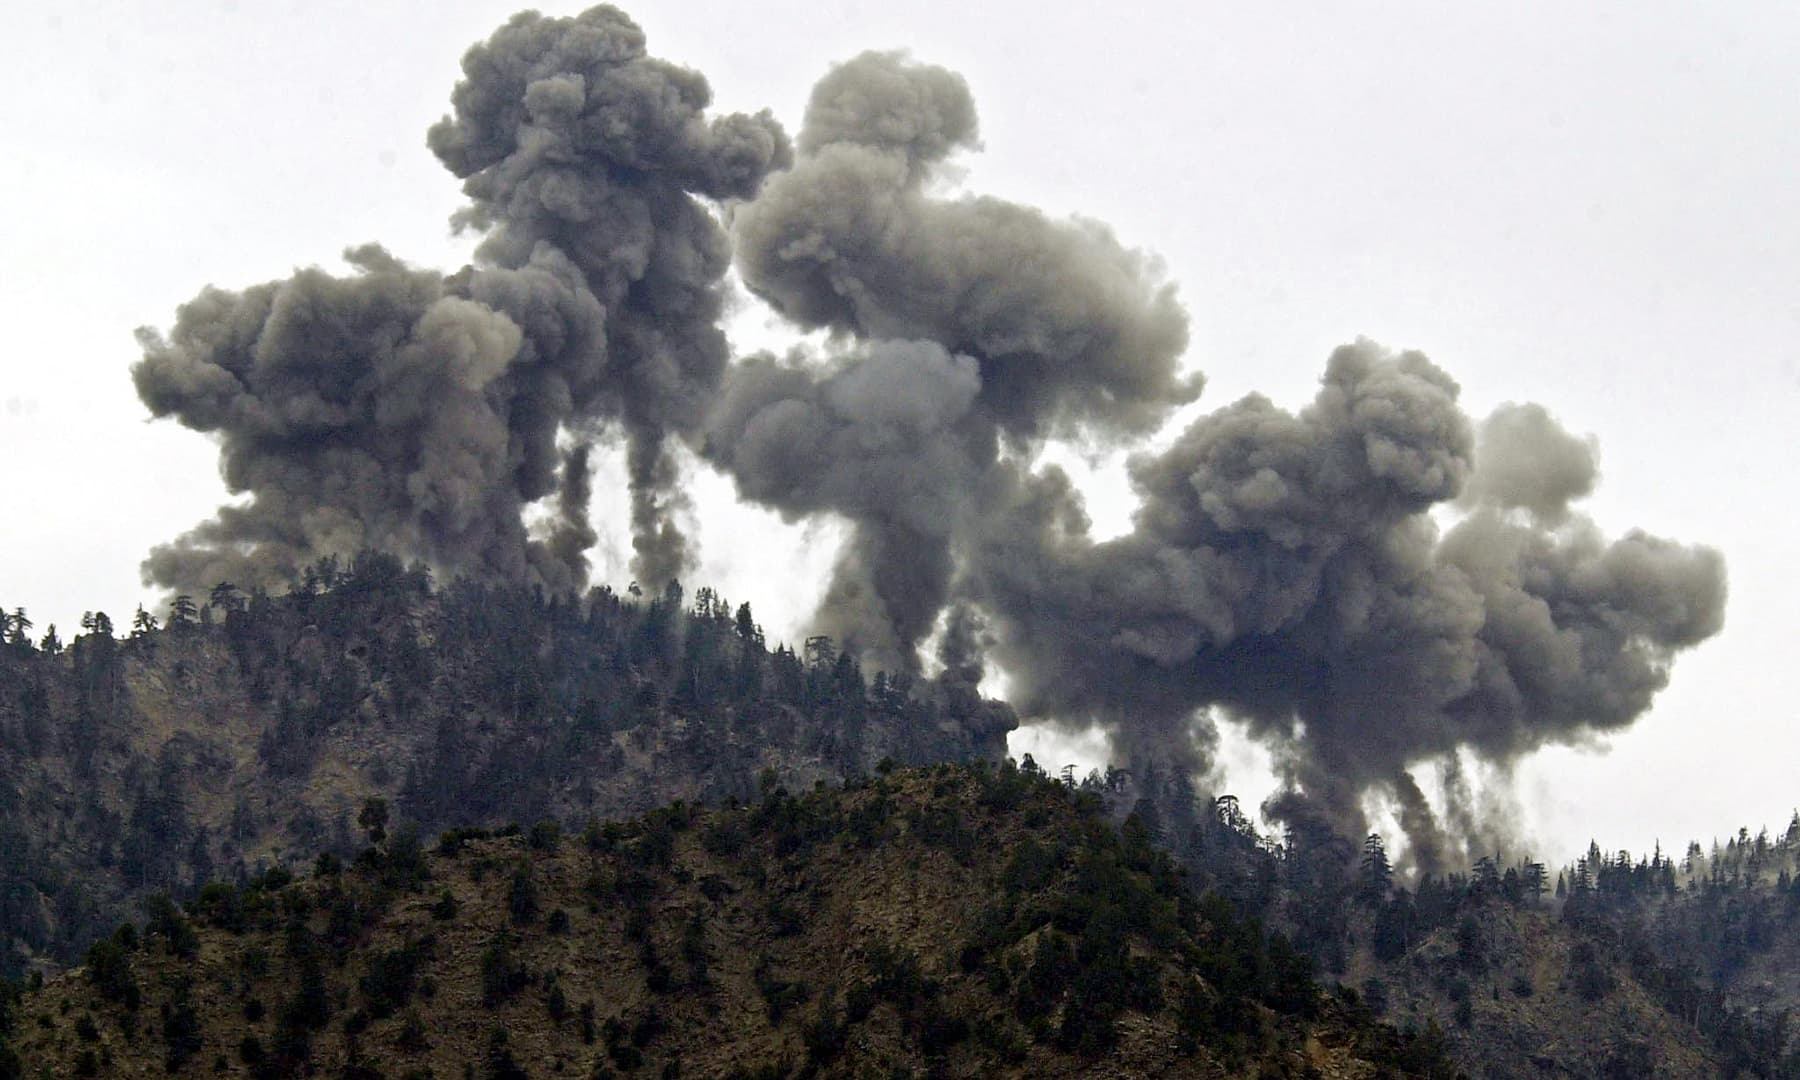 In this file photo taken on December 14, 2001, multiple explosions rock Al Qaeda positions in the Tora Bora mountains after an attack by US warplanes in Tora Bora. — AFP